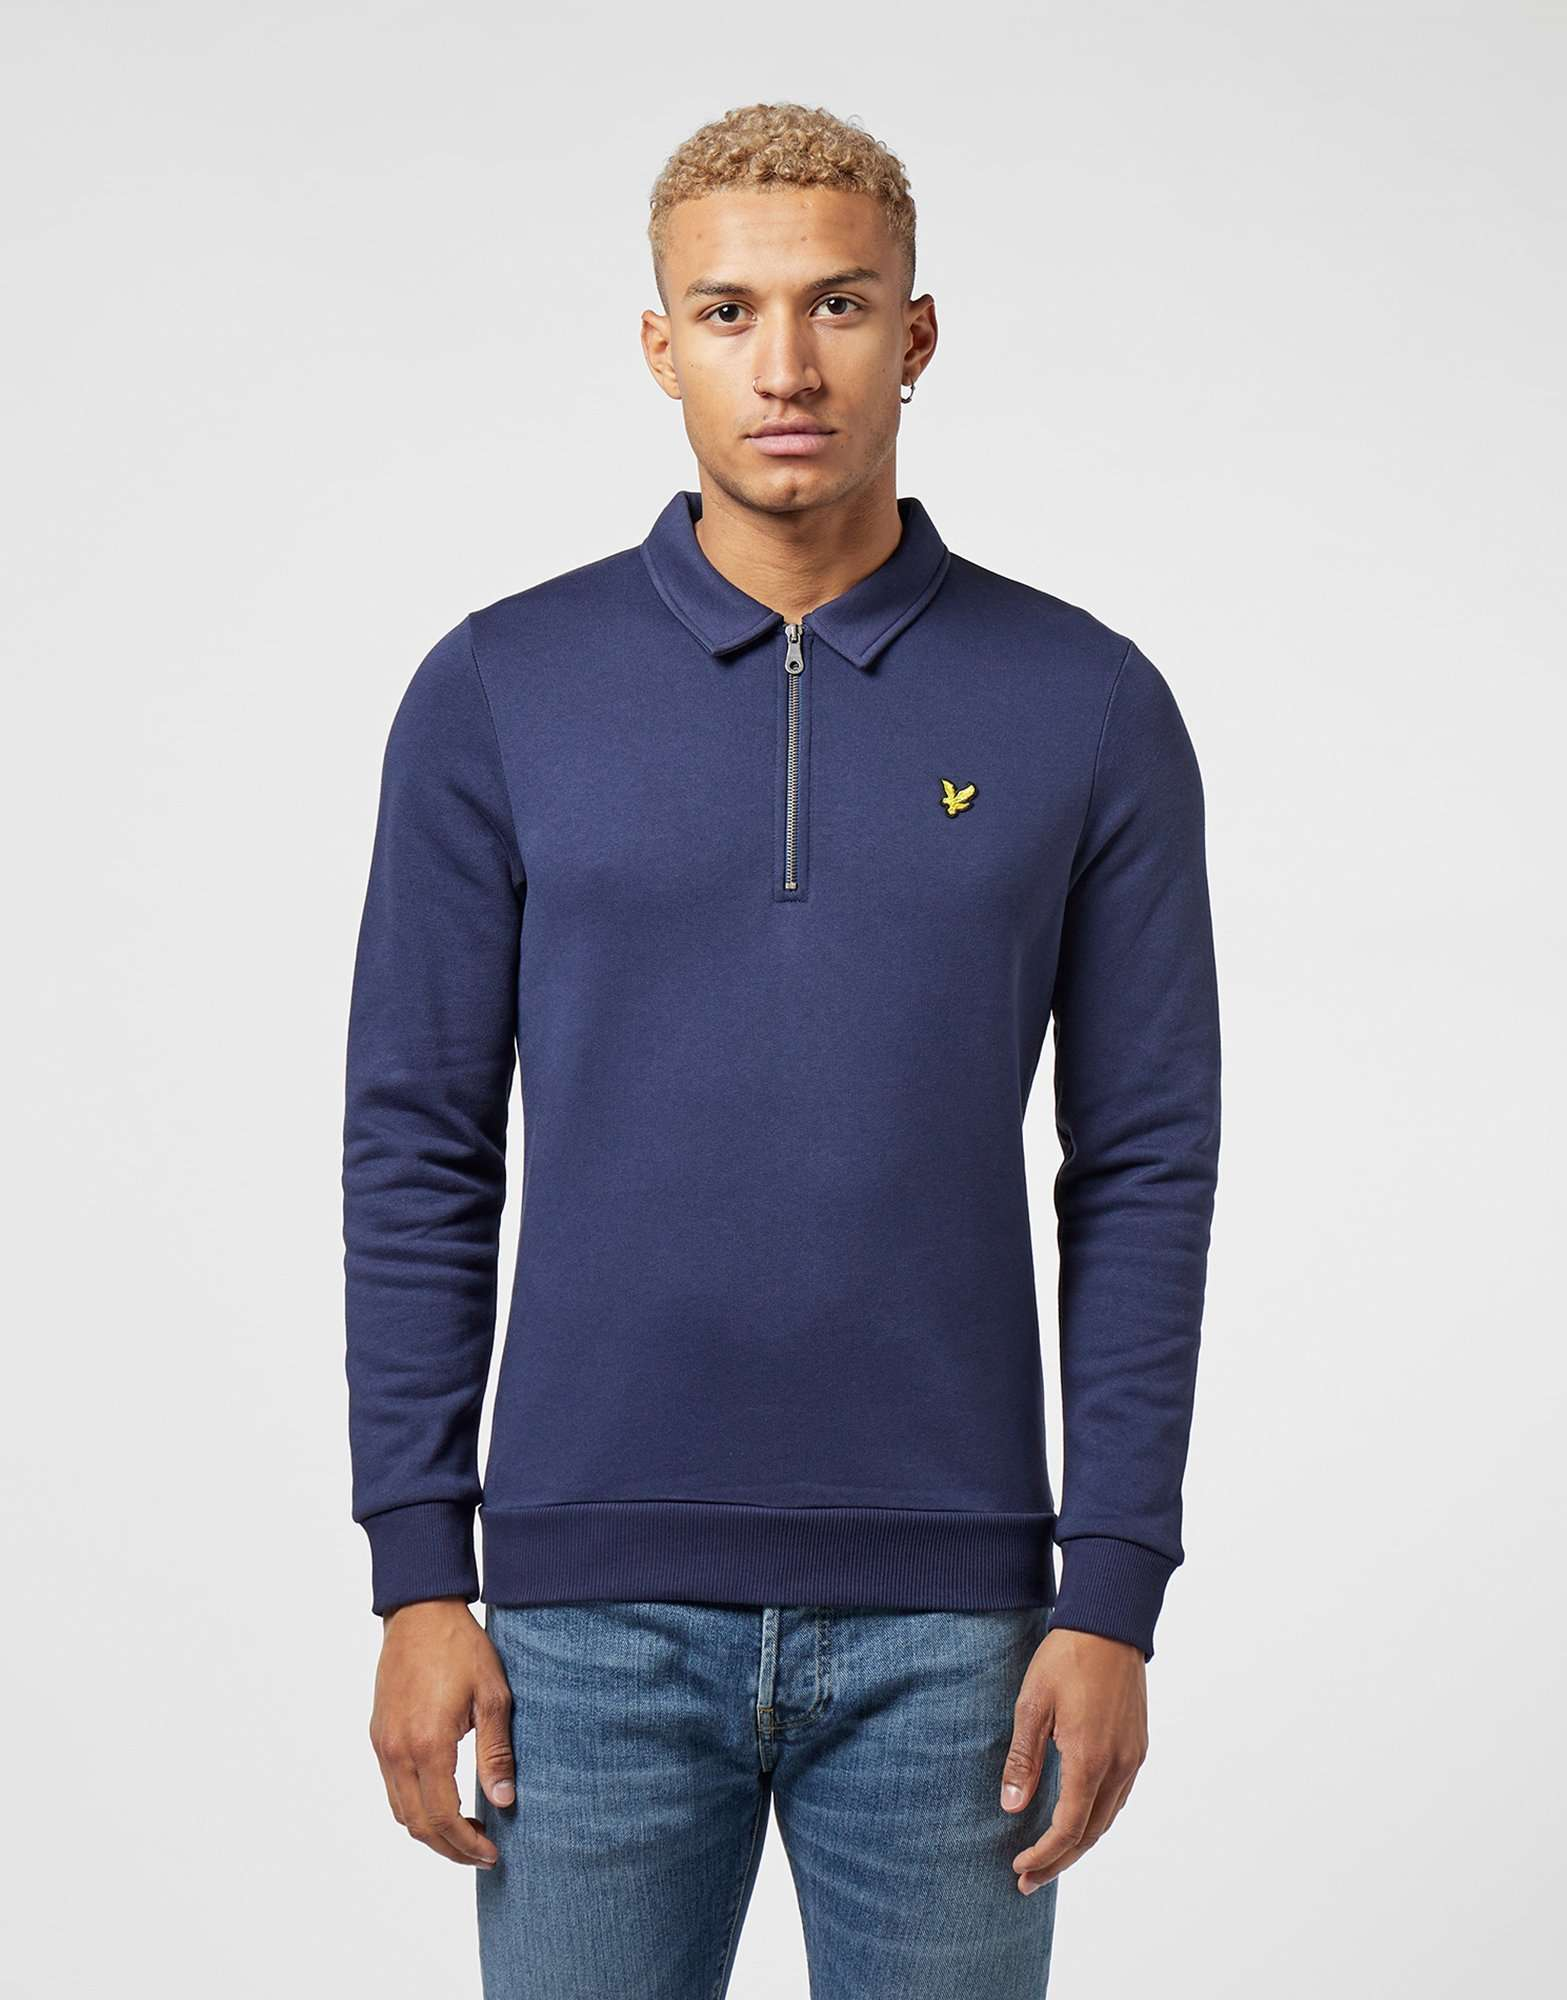 Lyle & Scott Quarter Zip Collar Sweatshirt